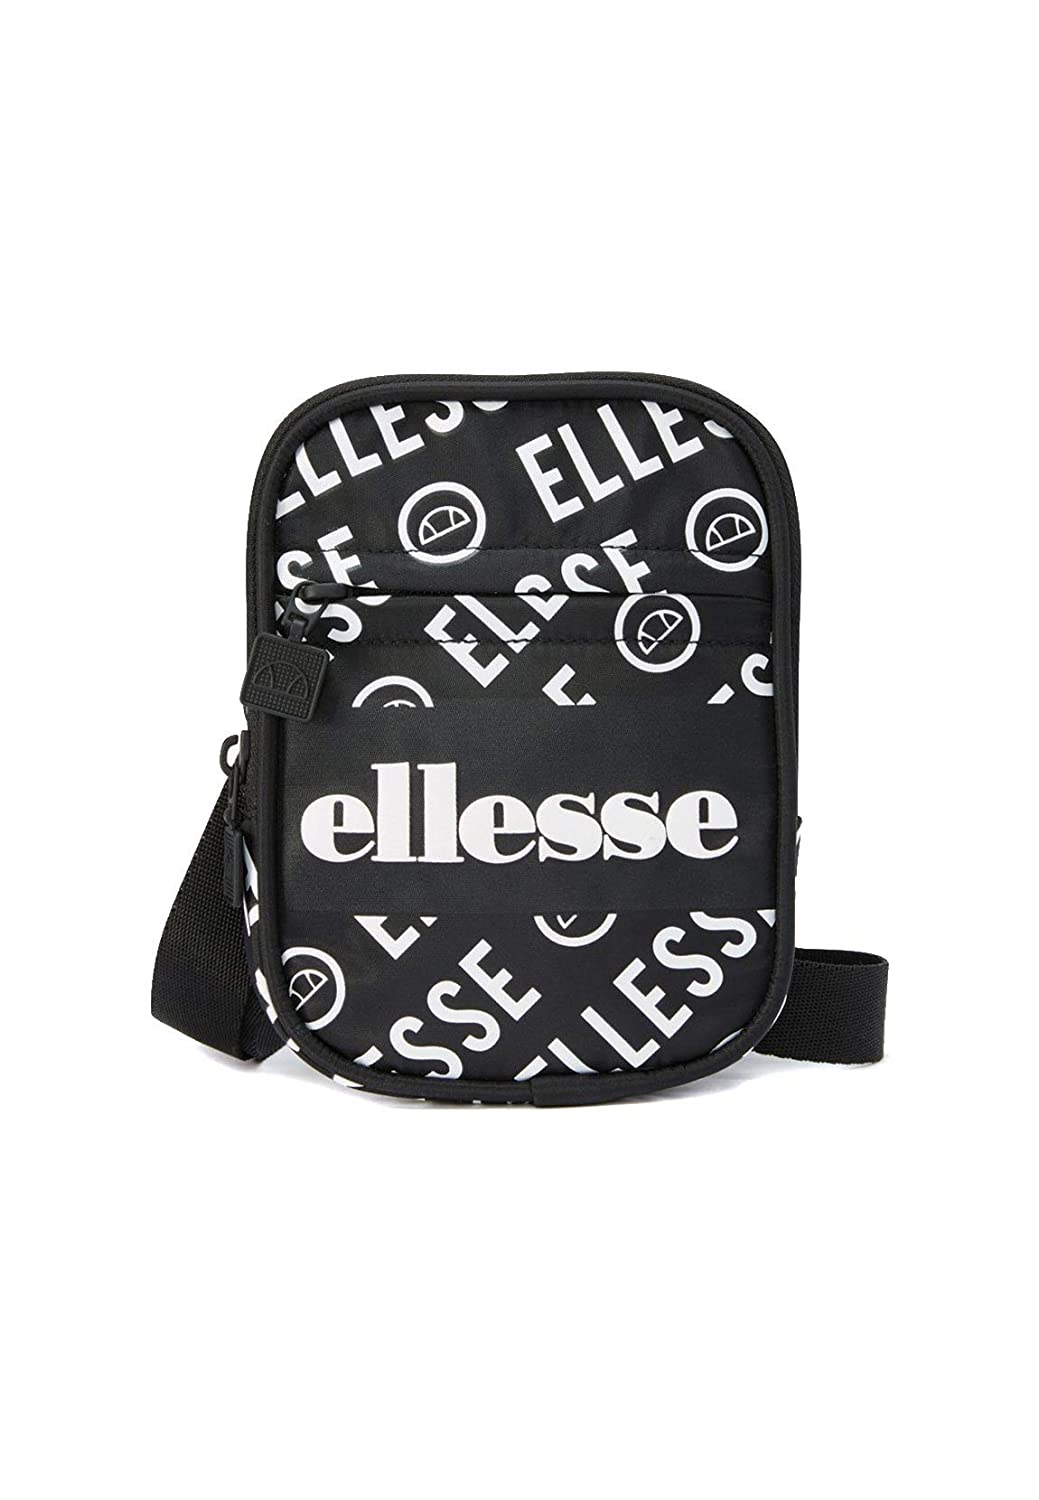 ellesse Umhängetasche MICKEL SMALL ITEM BAG Schwarz Black, Size:ONE SIZE